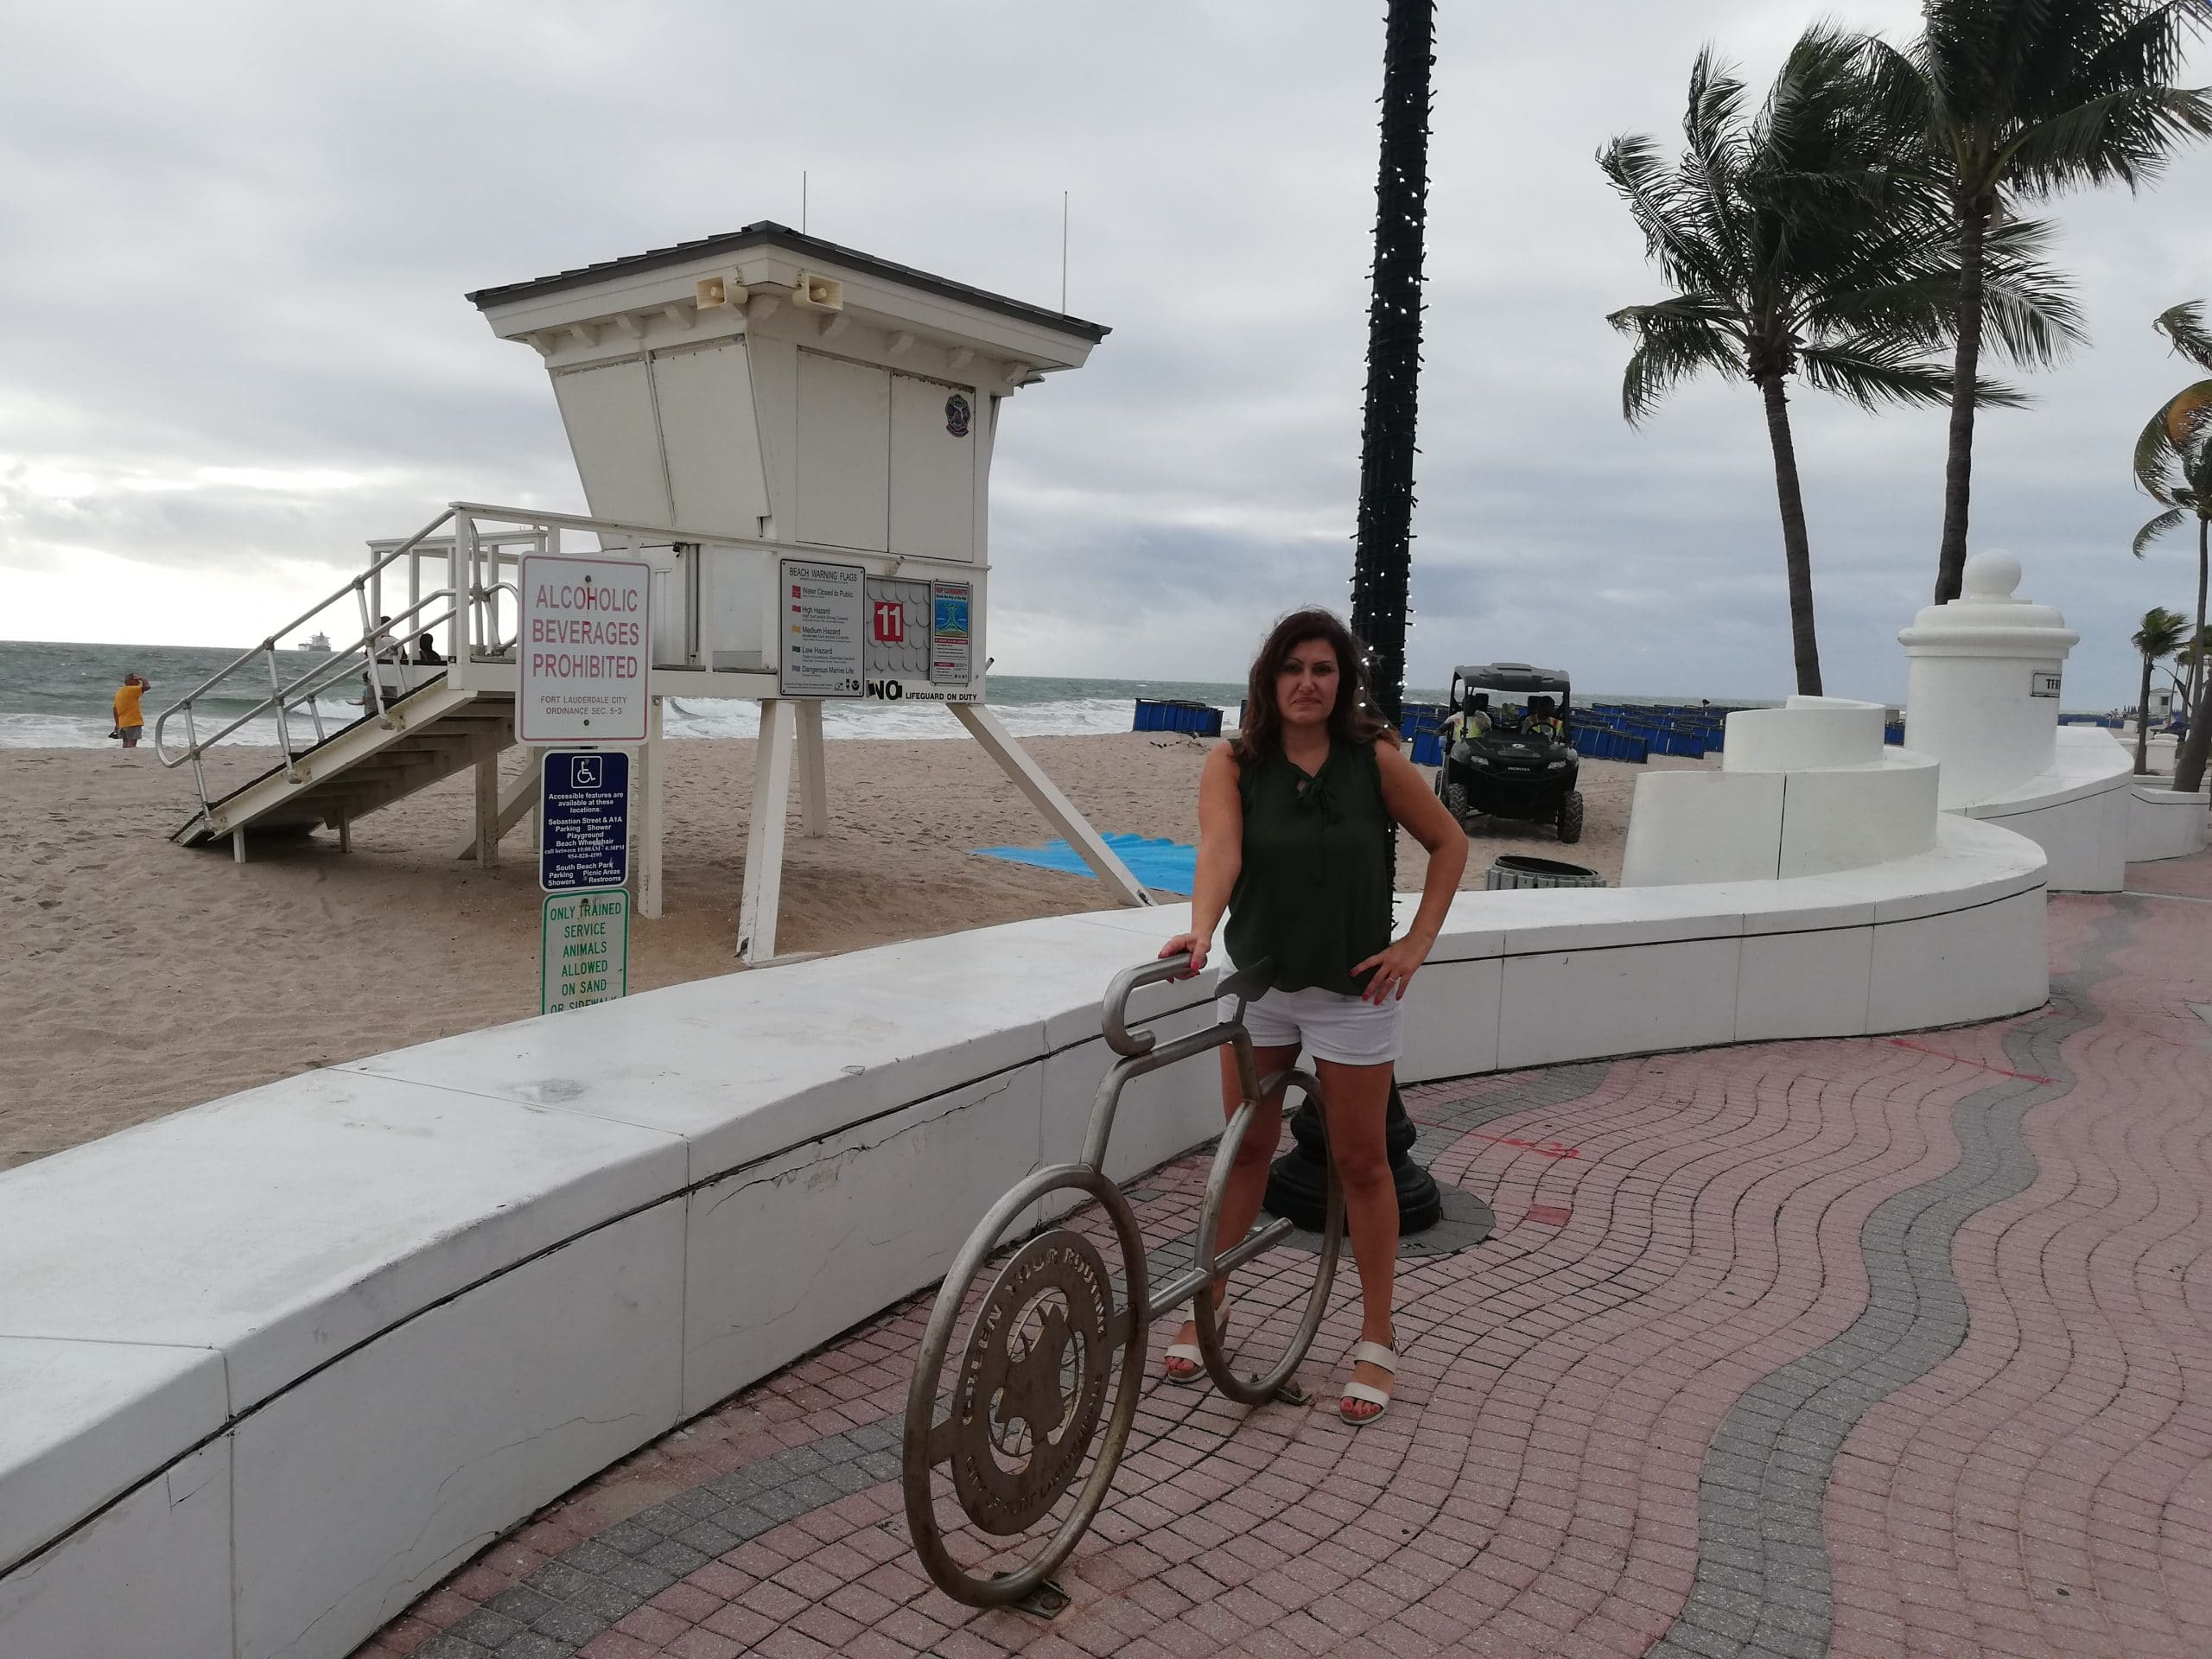 FORT LAUDERDALE COSA VEDERE